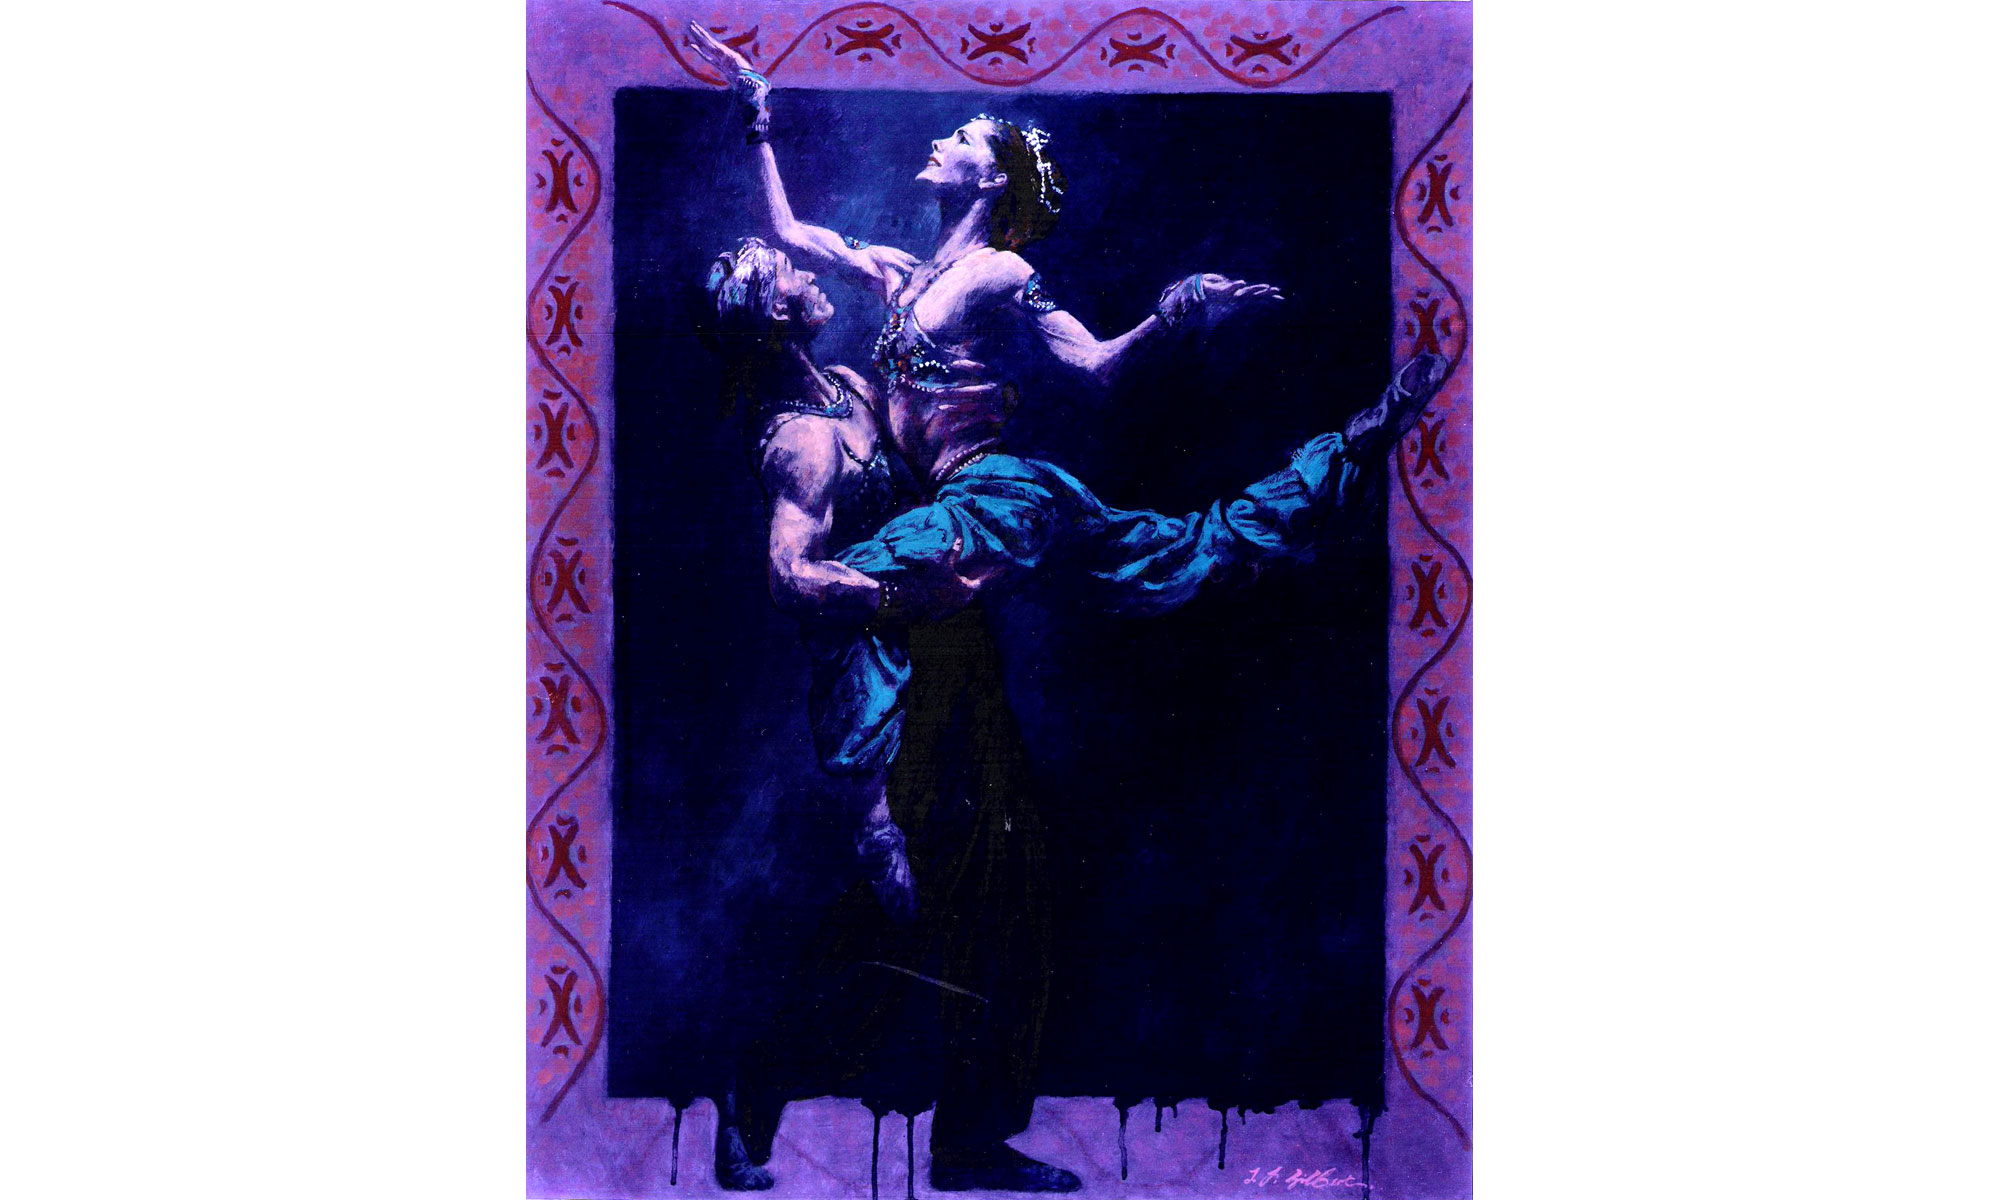 Darcey Bussell, Scheherazade Painting by Terence J Gilbert Oil on Board